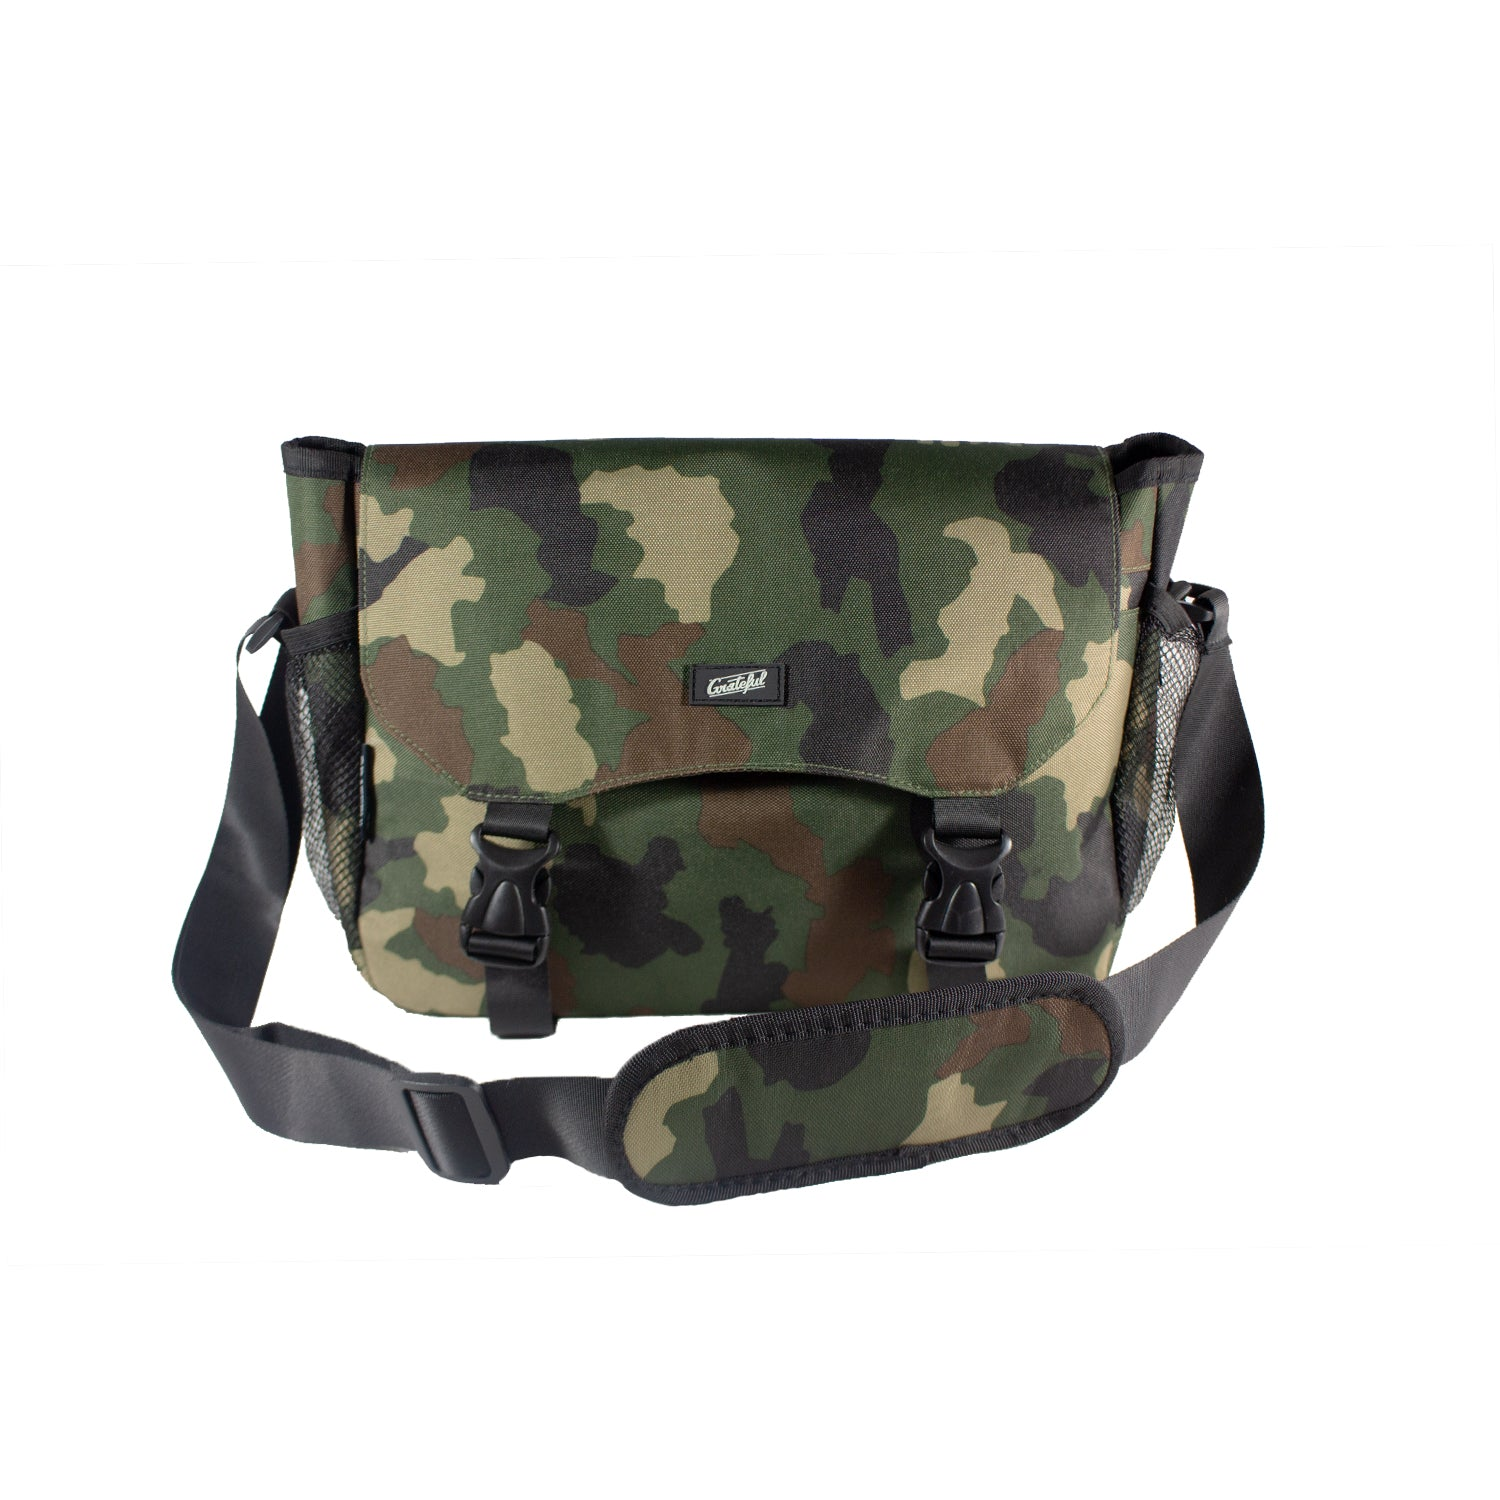 Camo Grateful Shoulder Bag